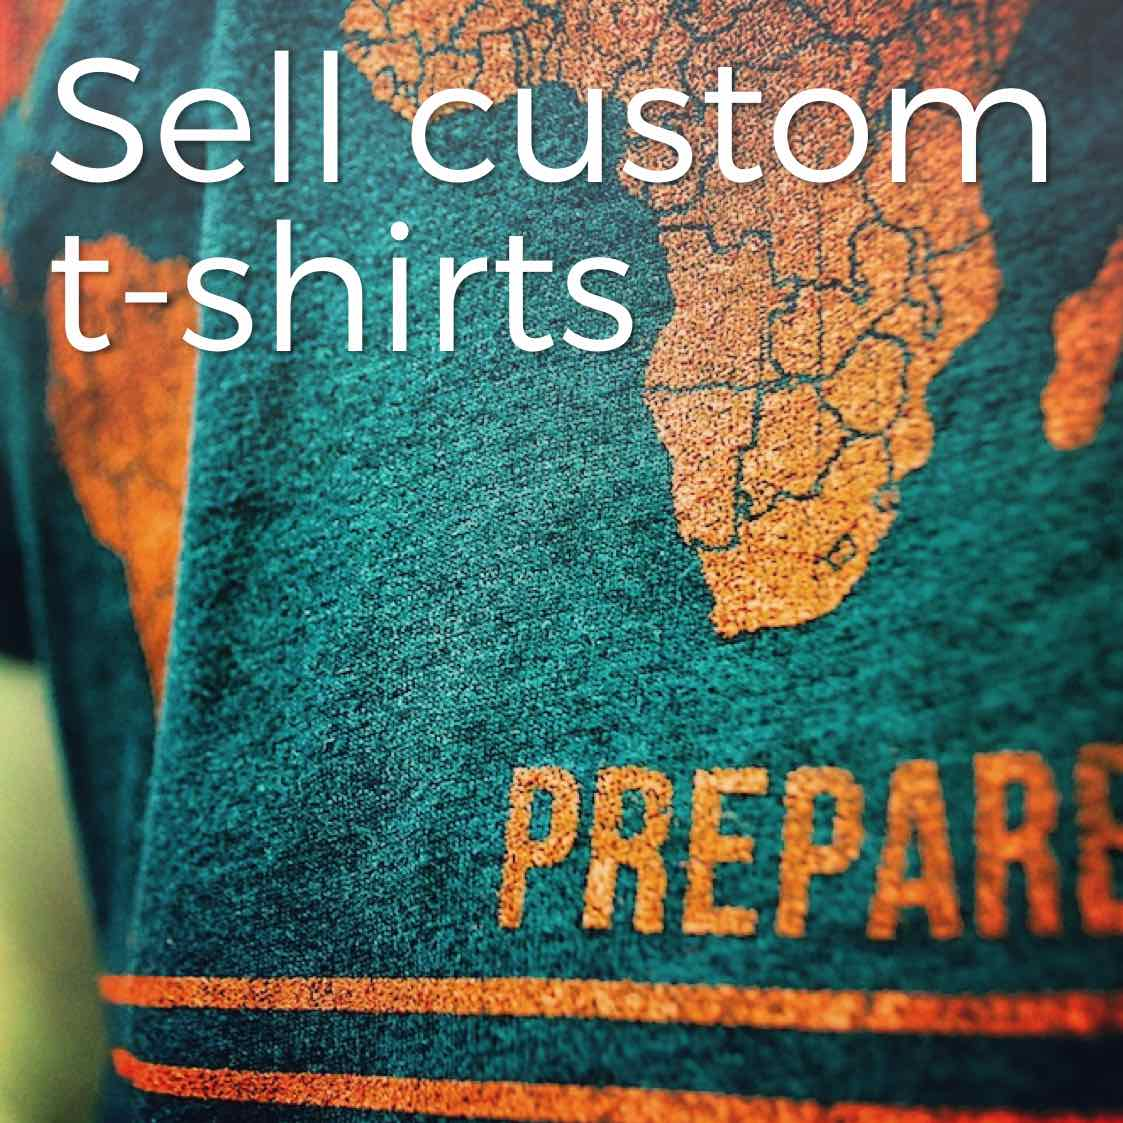 How to sell custom t-shirts to raise support for your mission trip